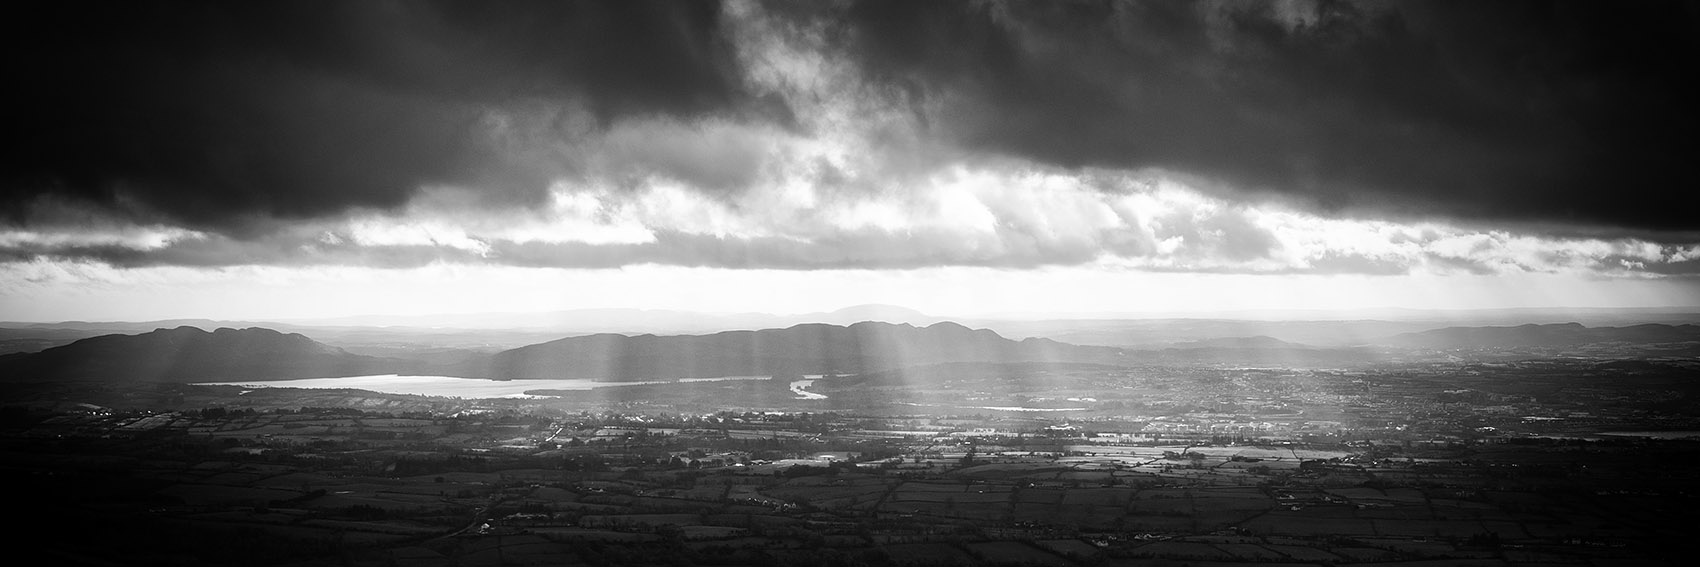 Lough-Gill-Sligo-Town-from-Benbulben-Mountain